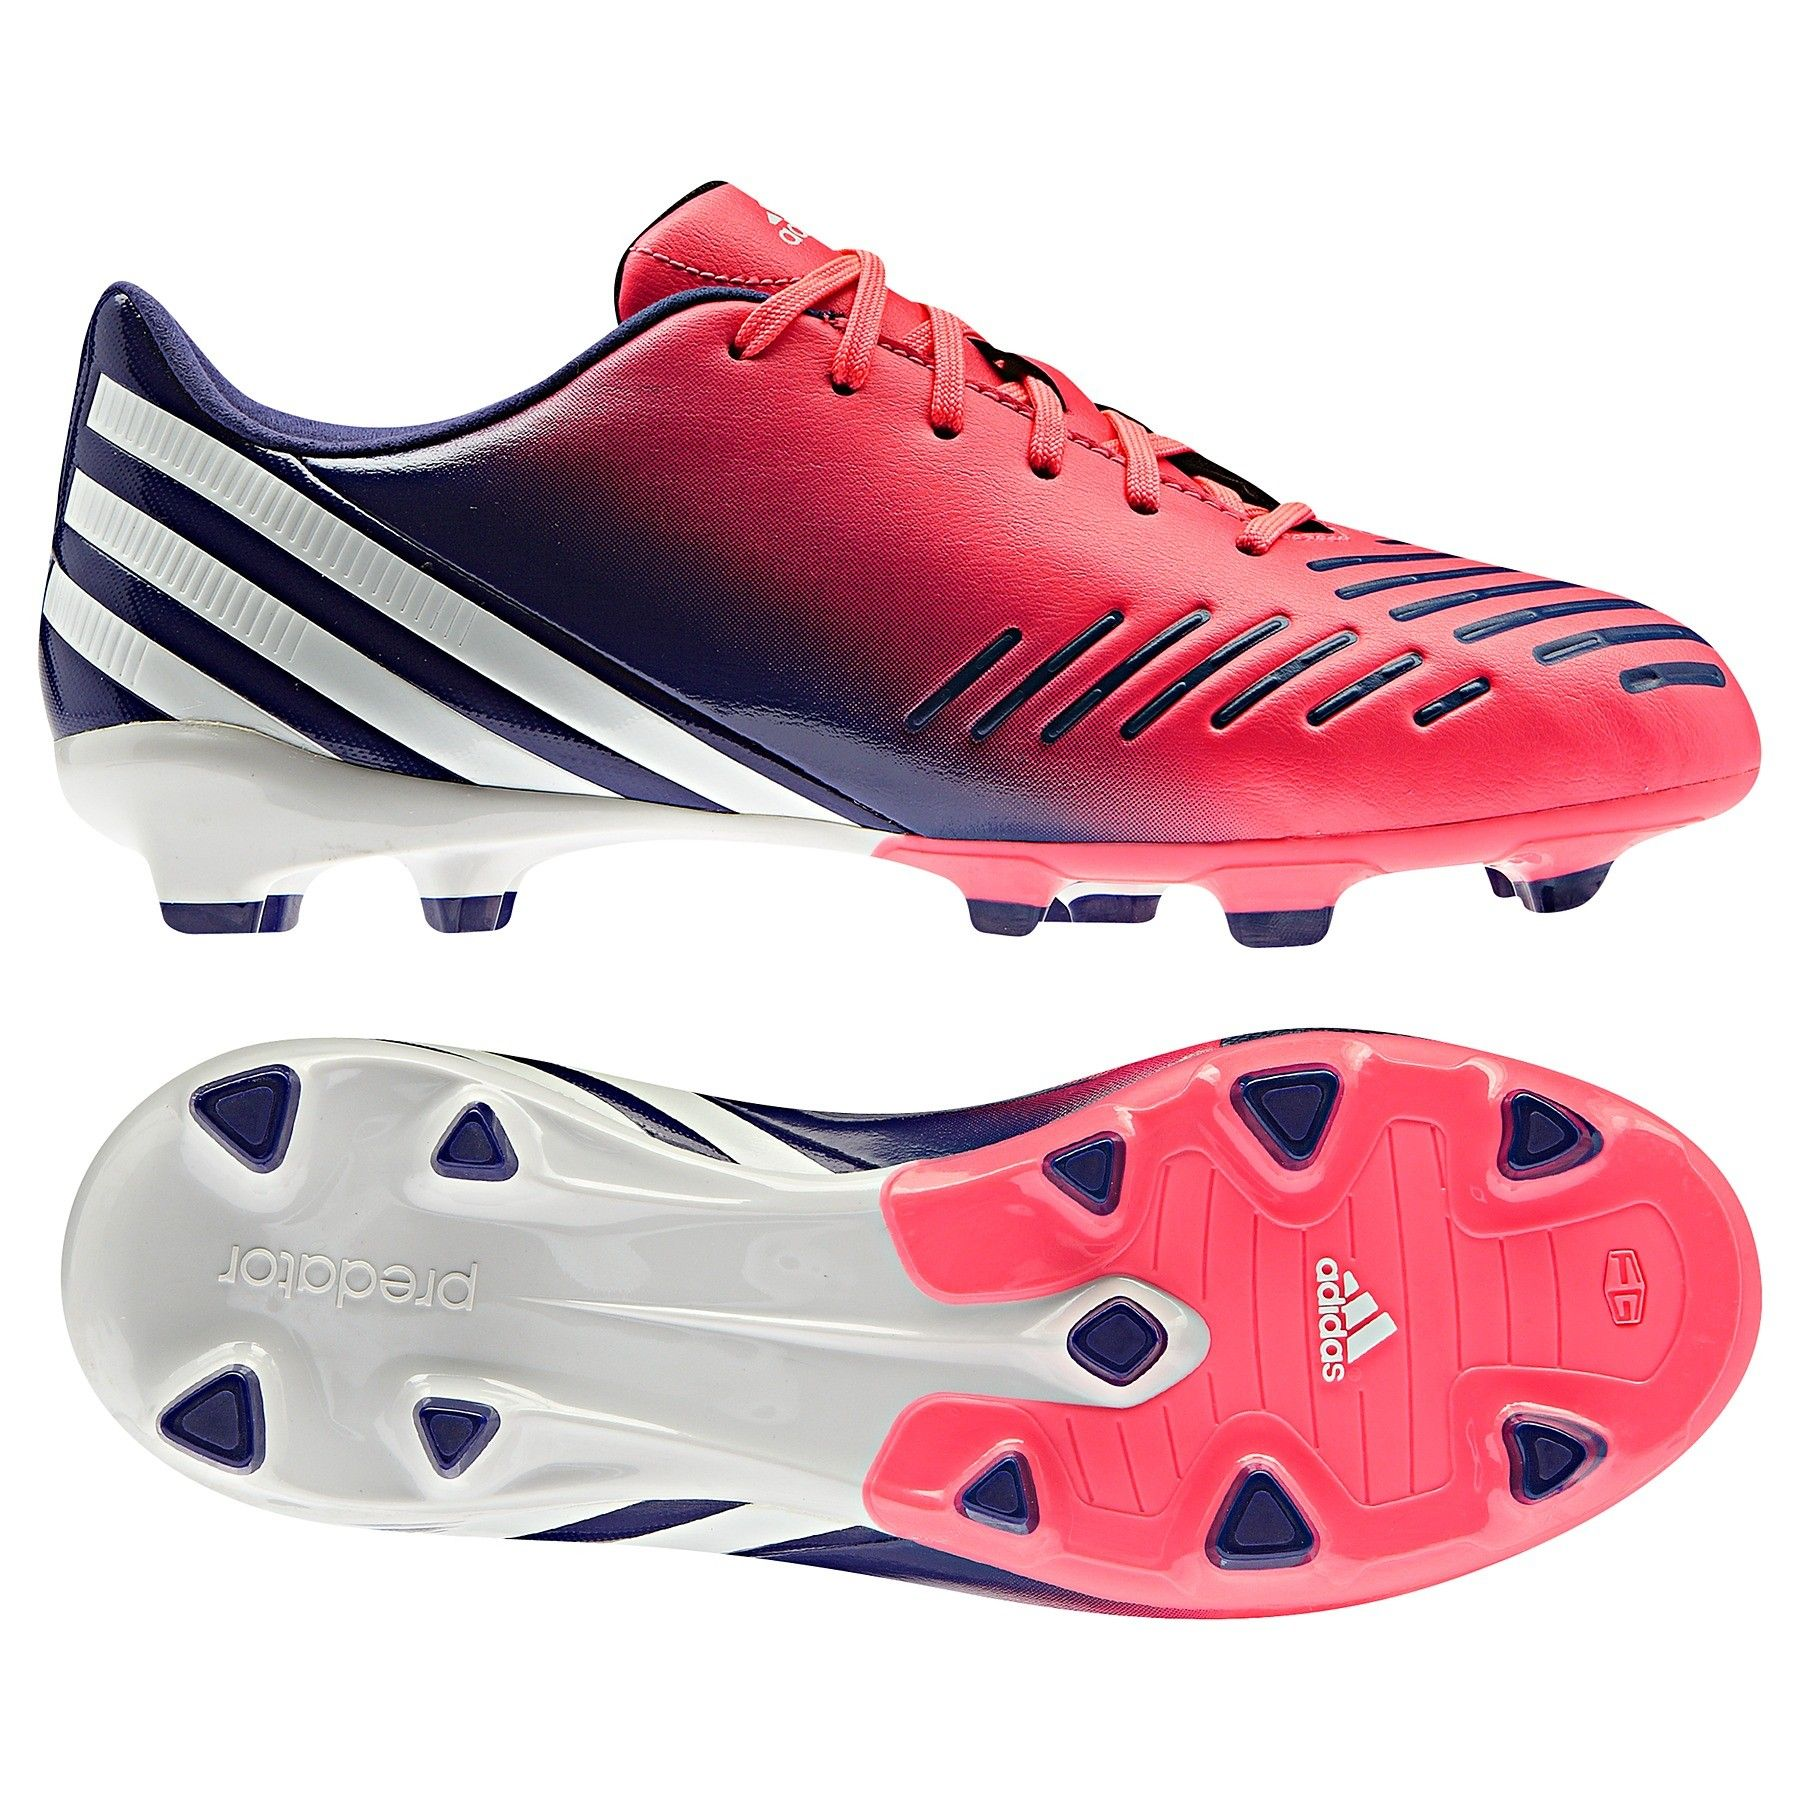 womens adidas soccer cleats - Google Search  022d389c2a